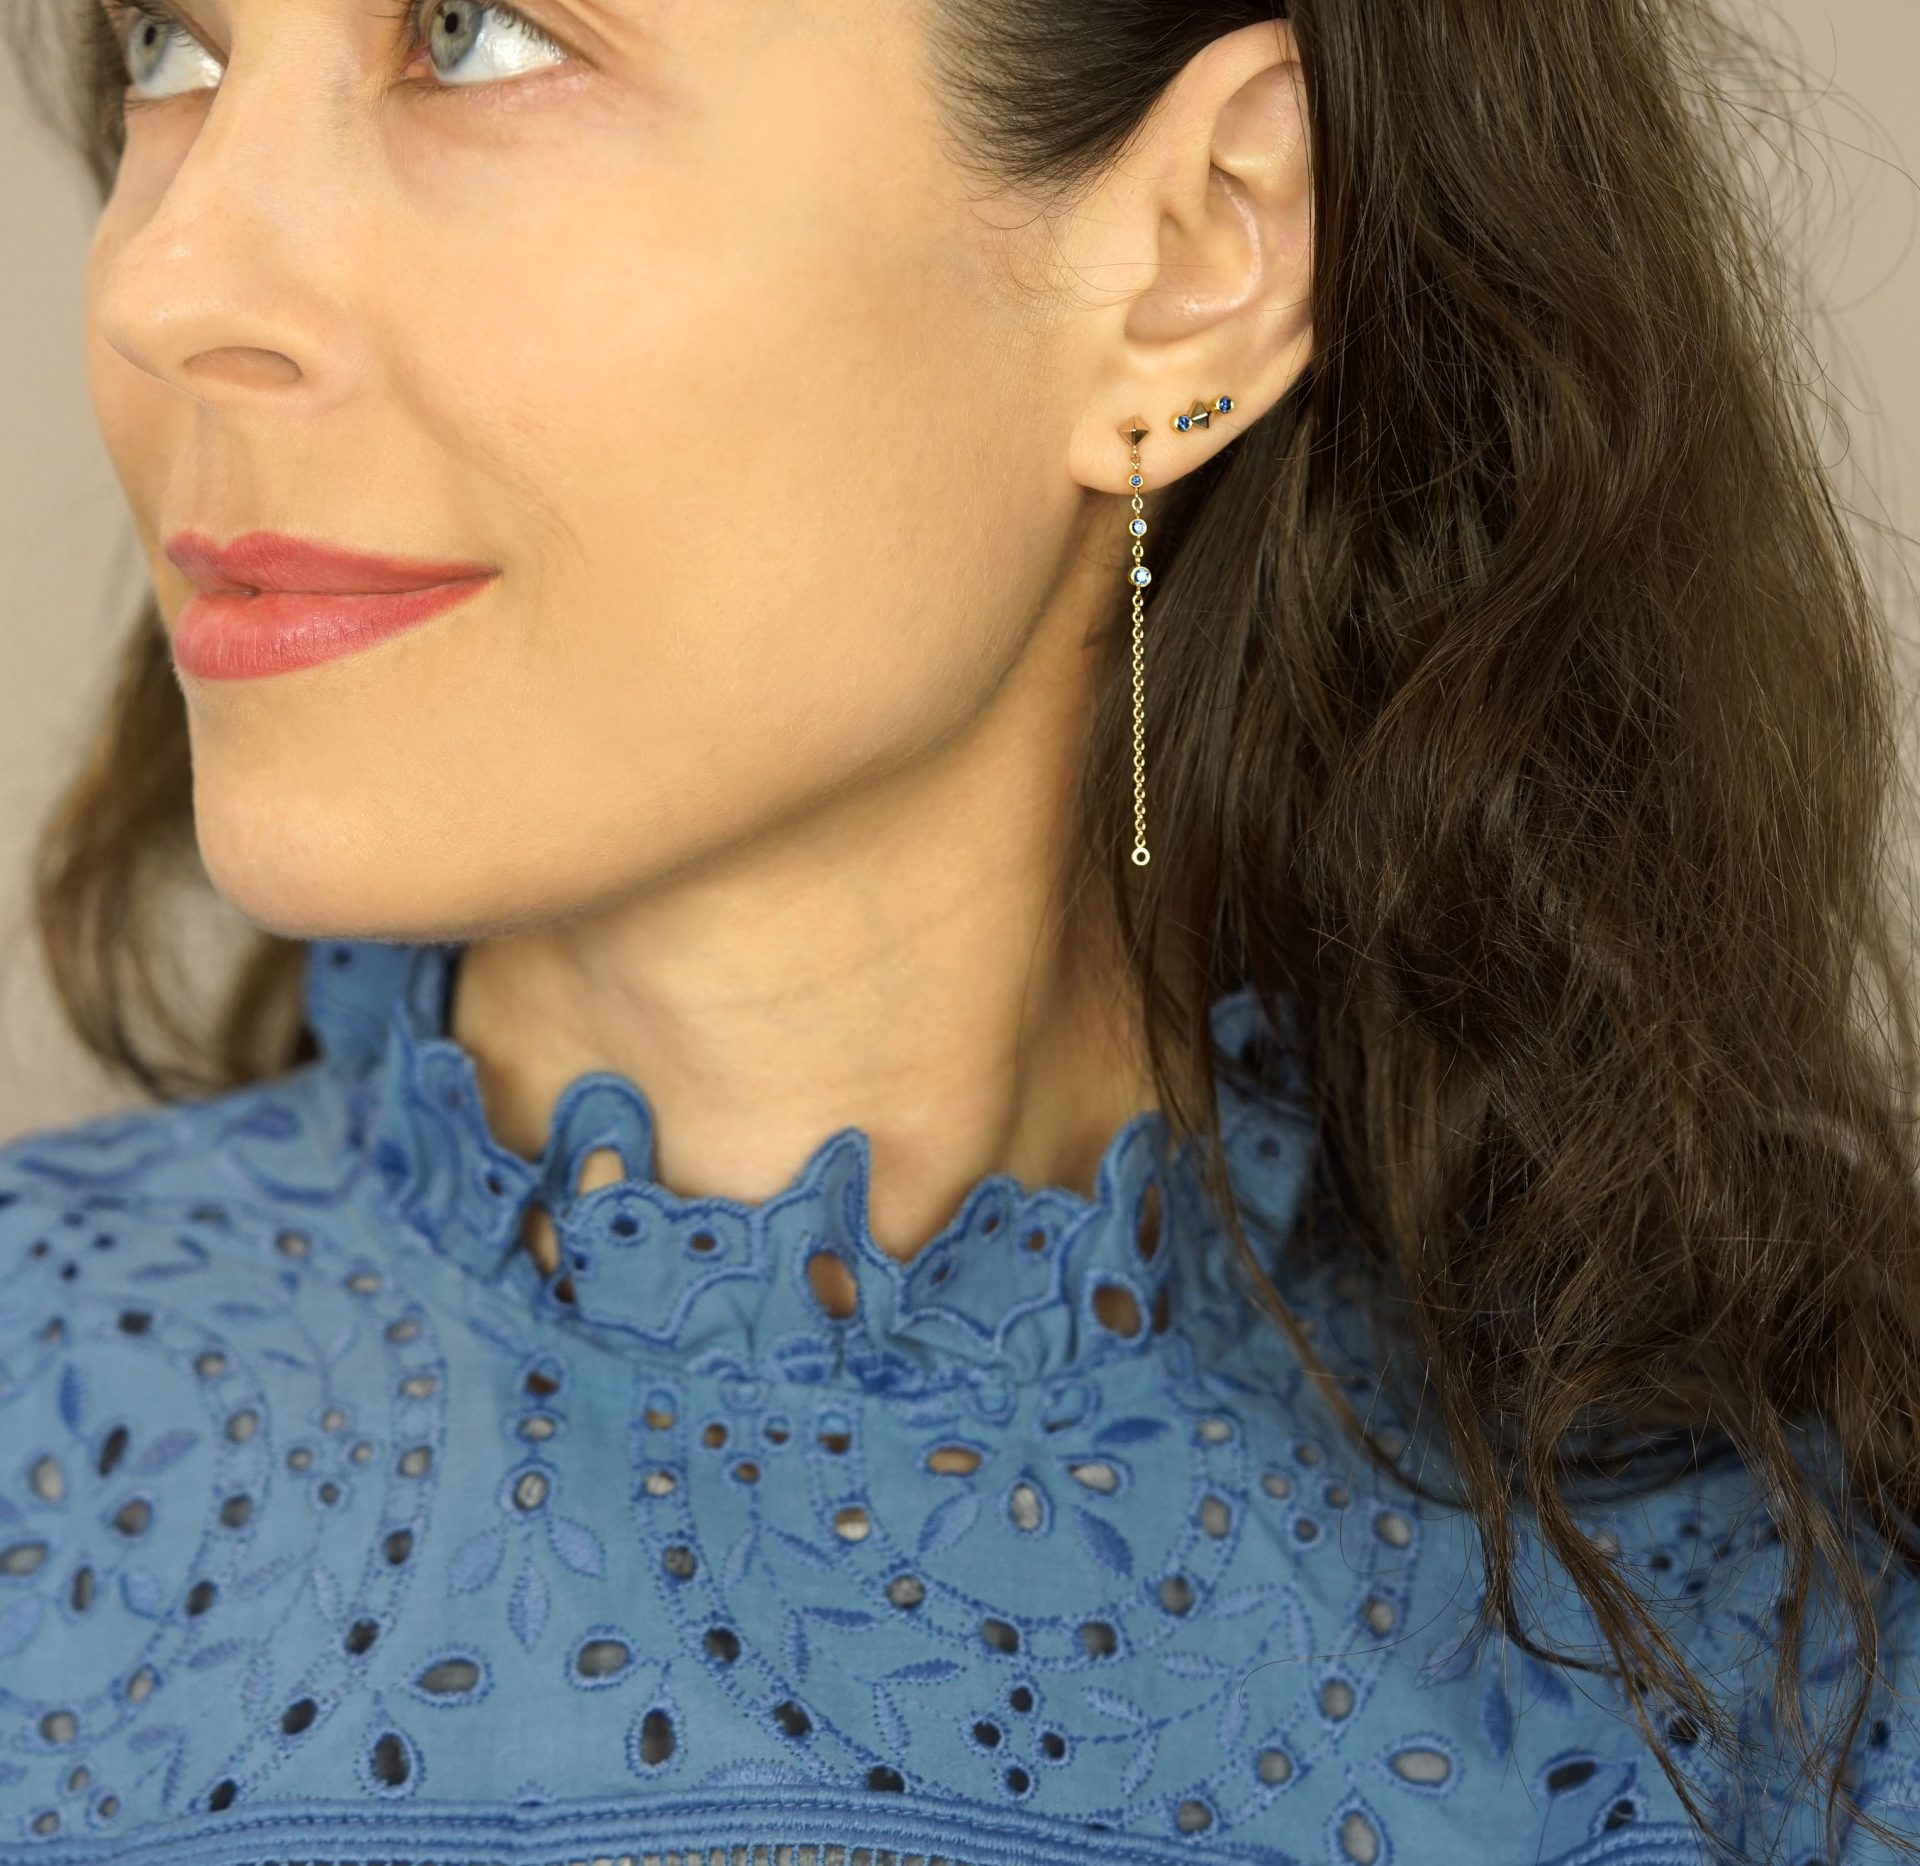 #CuratedEar: How To Stack Your Ear Piercings. Lena Cohen Jewellery Blog.